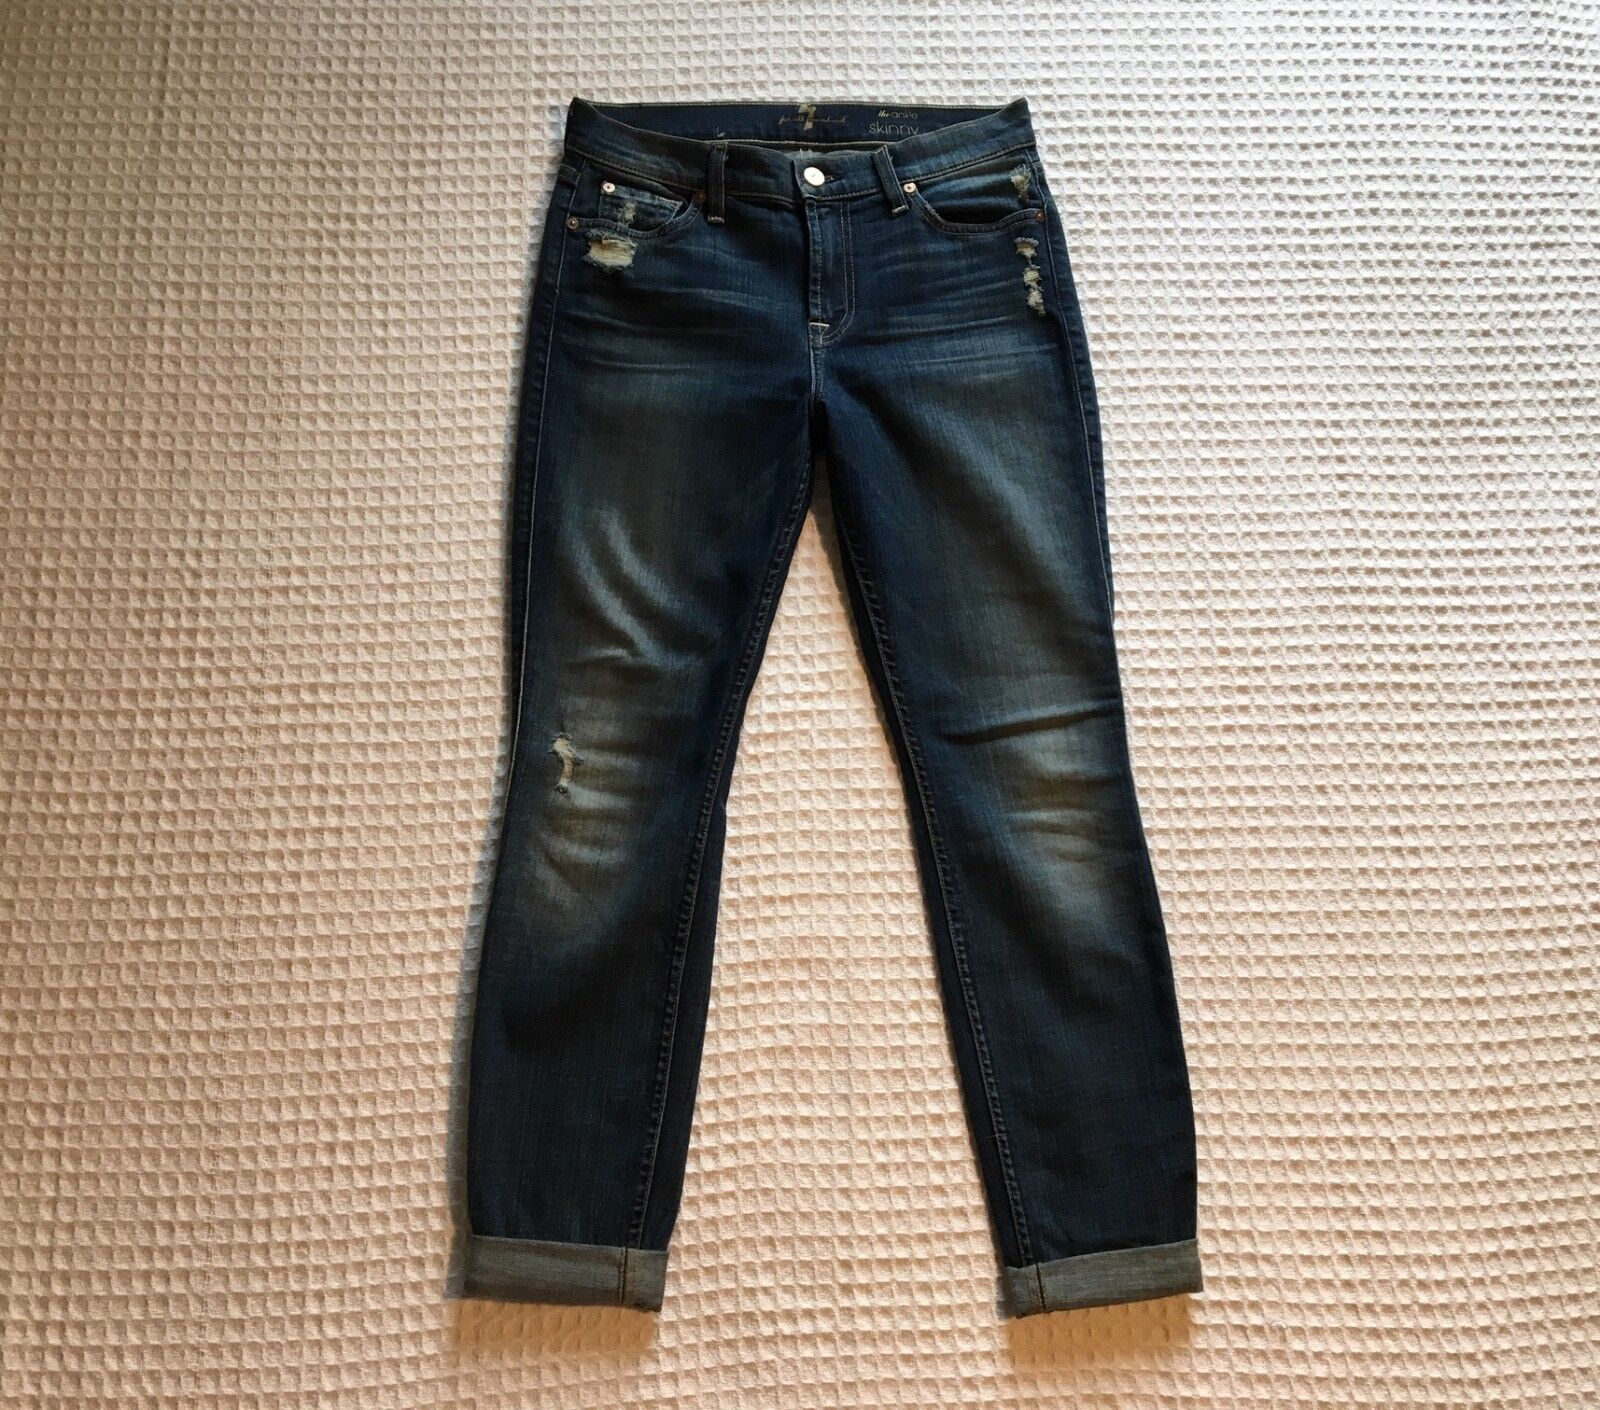 7 SEVEN for ALL MANKIND  225 The Ankle Distressed Skinny 28